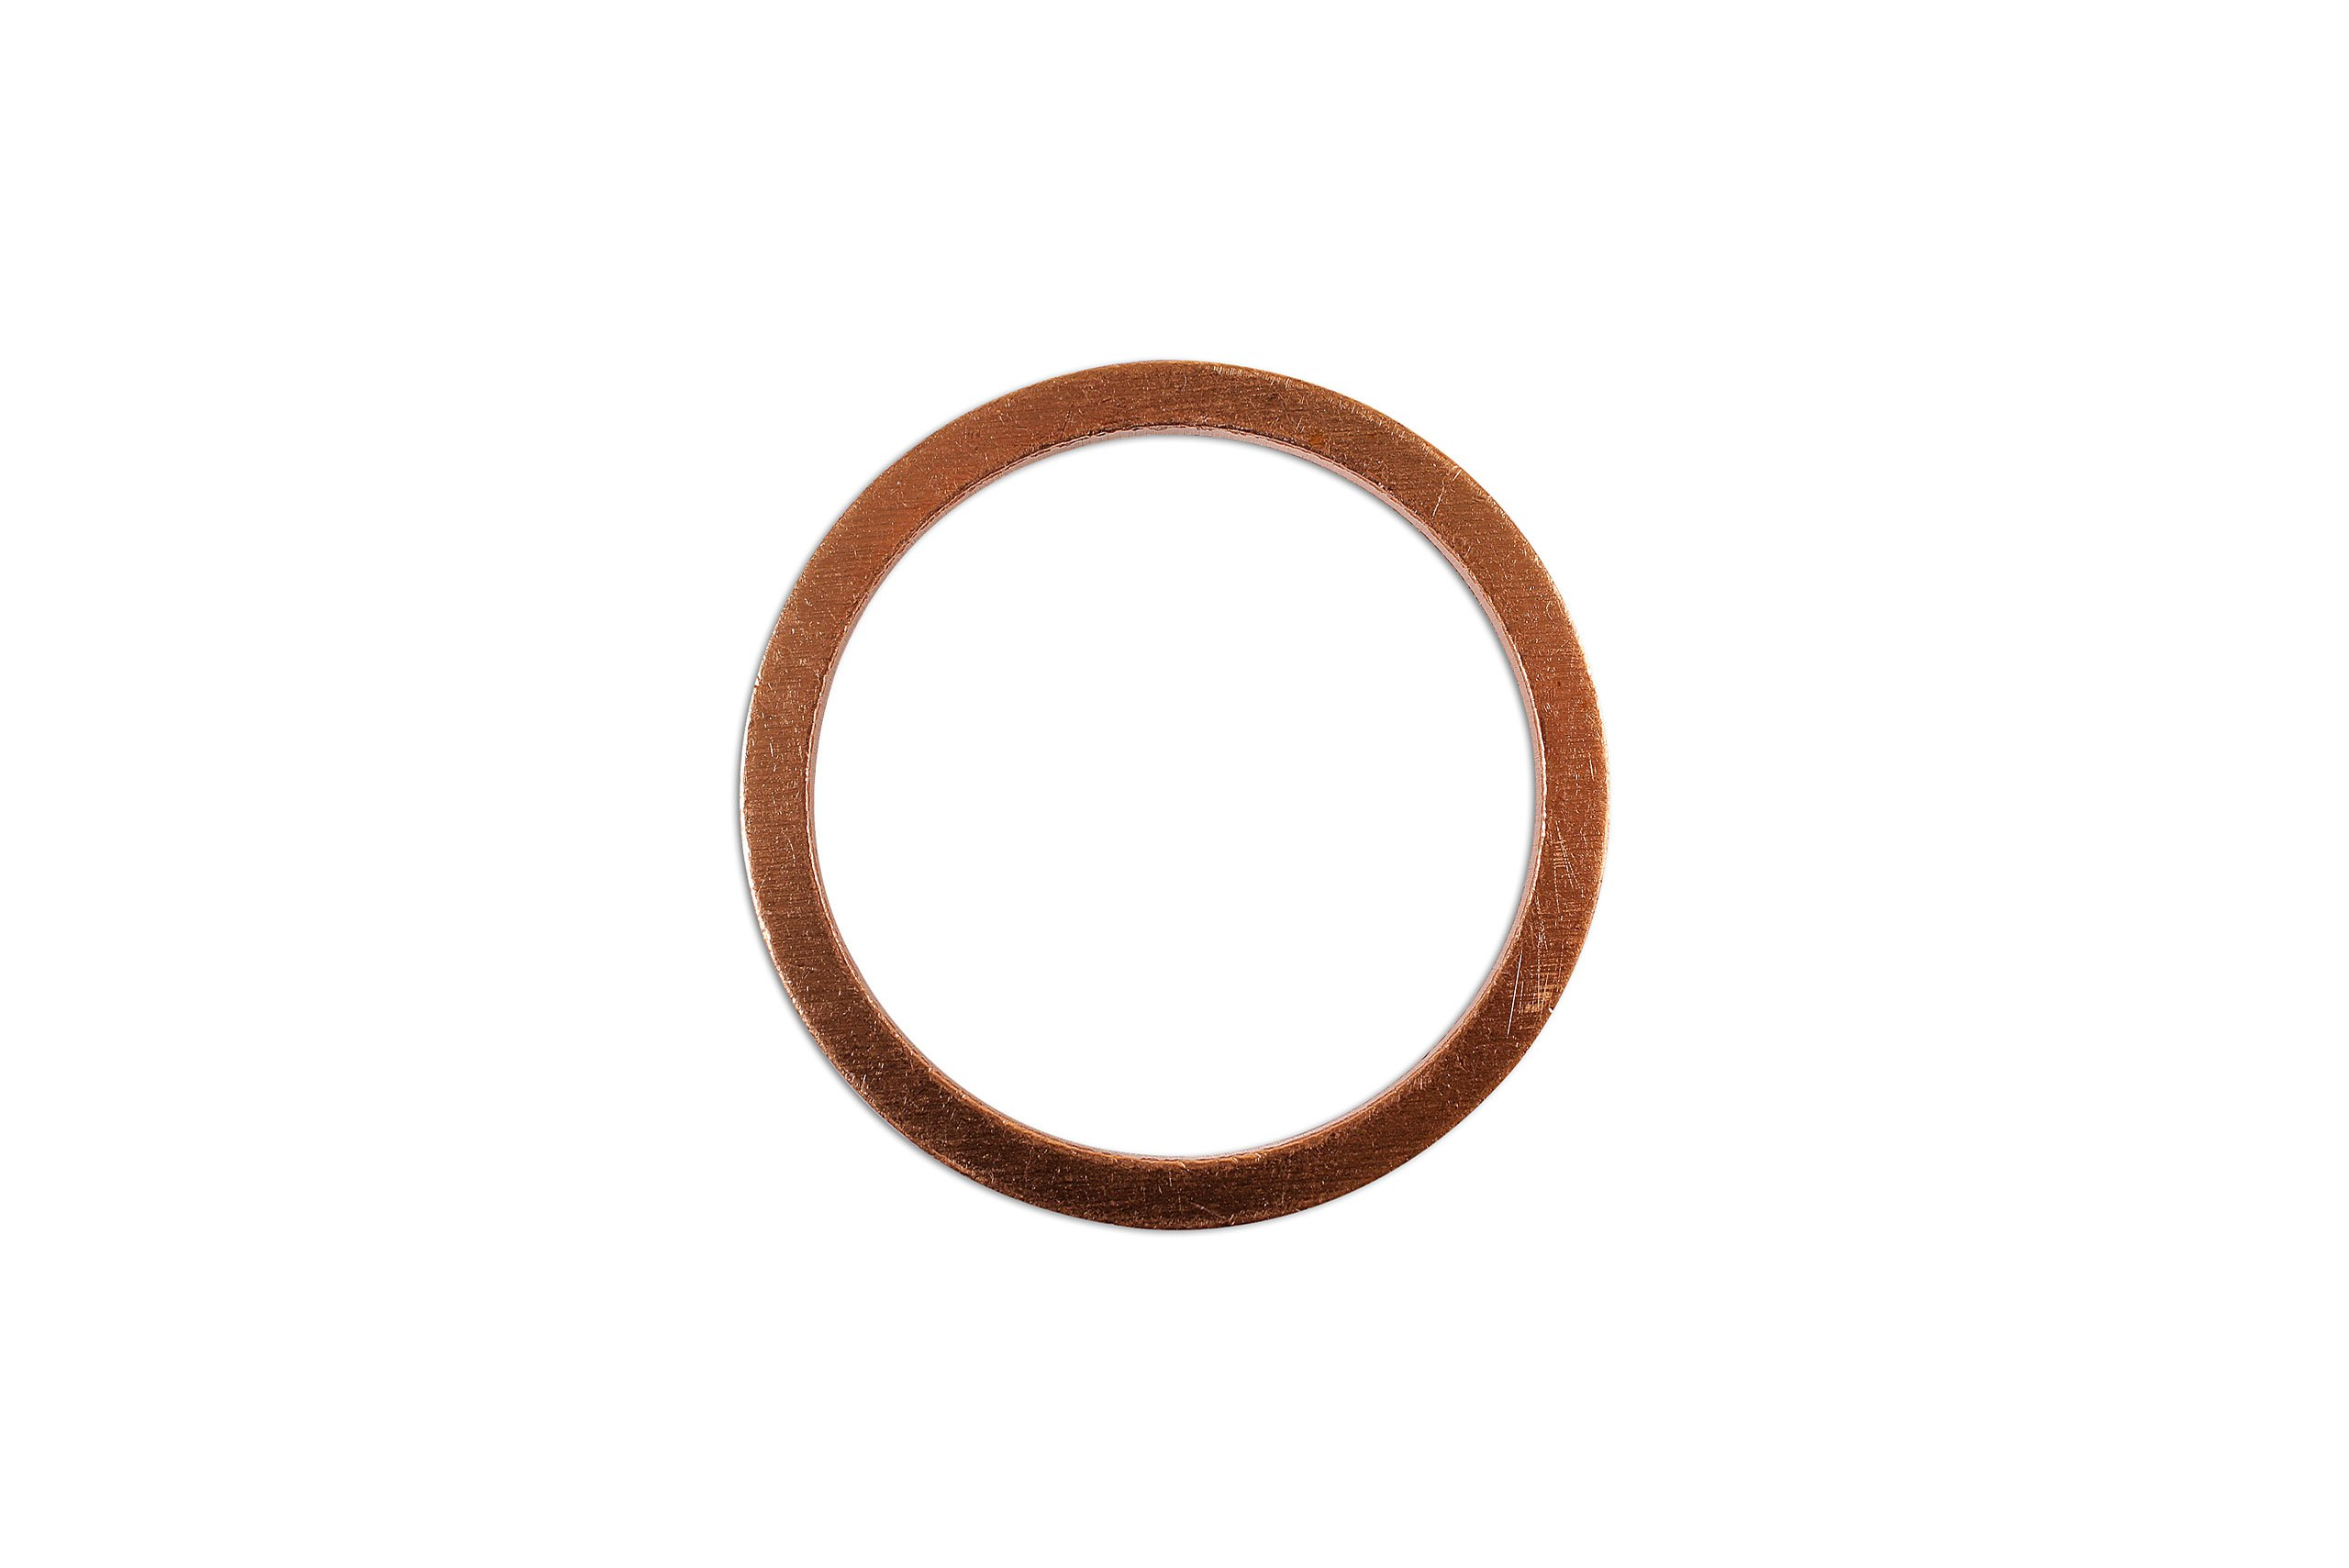 Connect - 36785 Sump Plug Washer Copper 26mm x 32mm x 2mm Pk 10